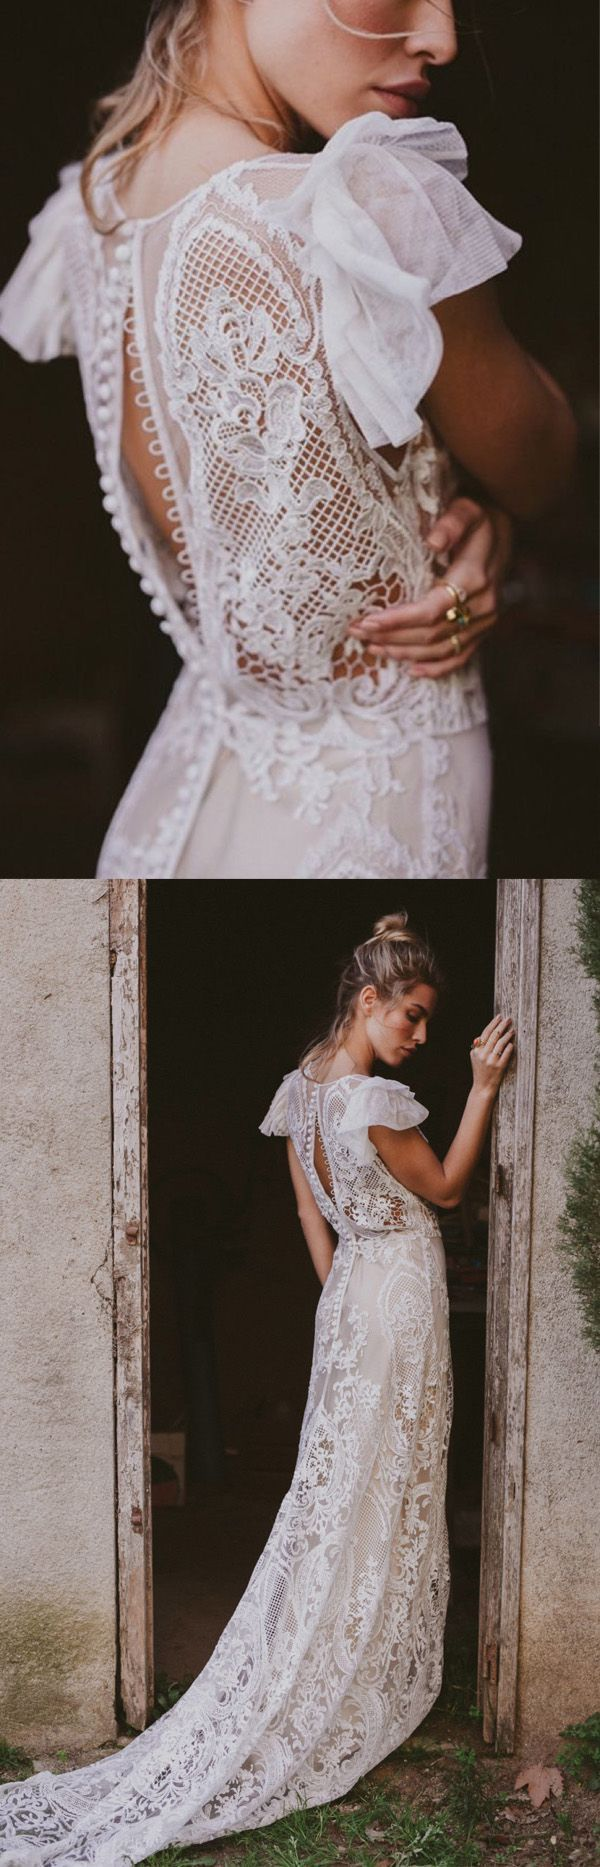 Boho style crochet lace wedding dress fairy tale pinterest